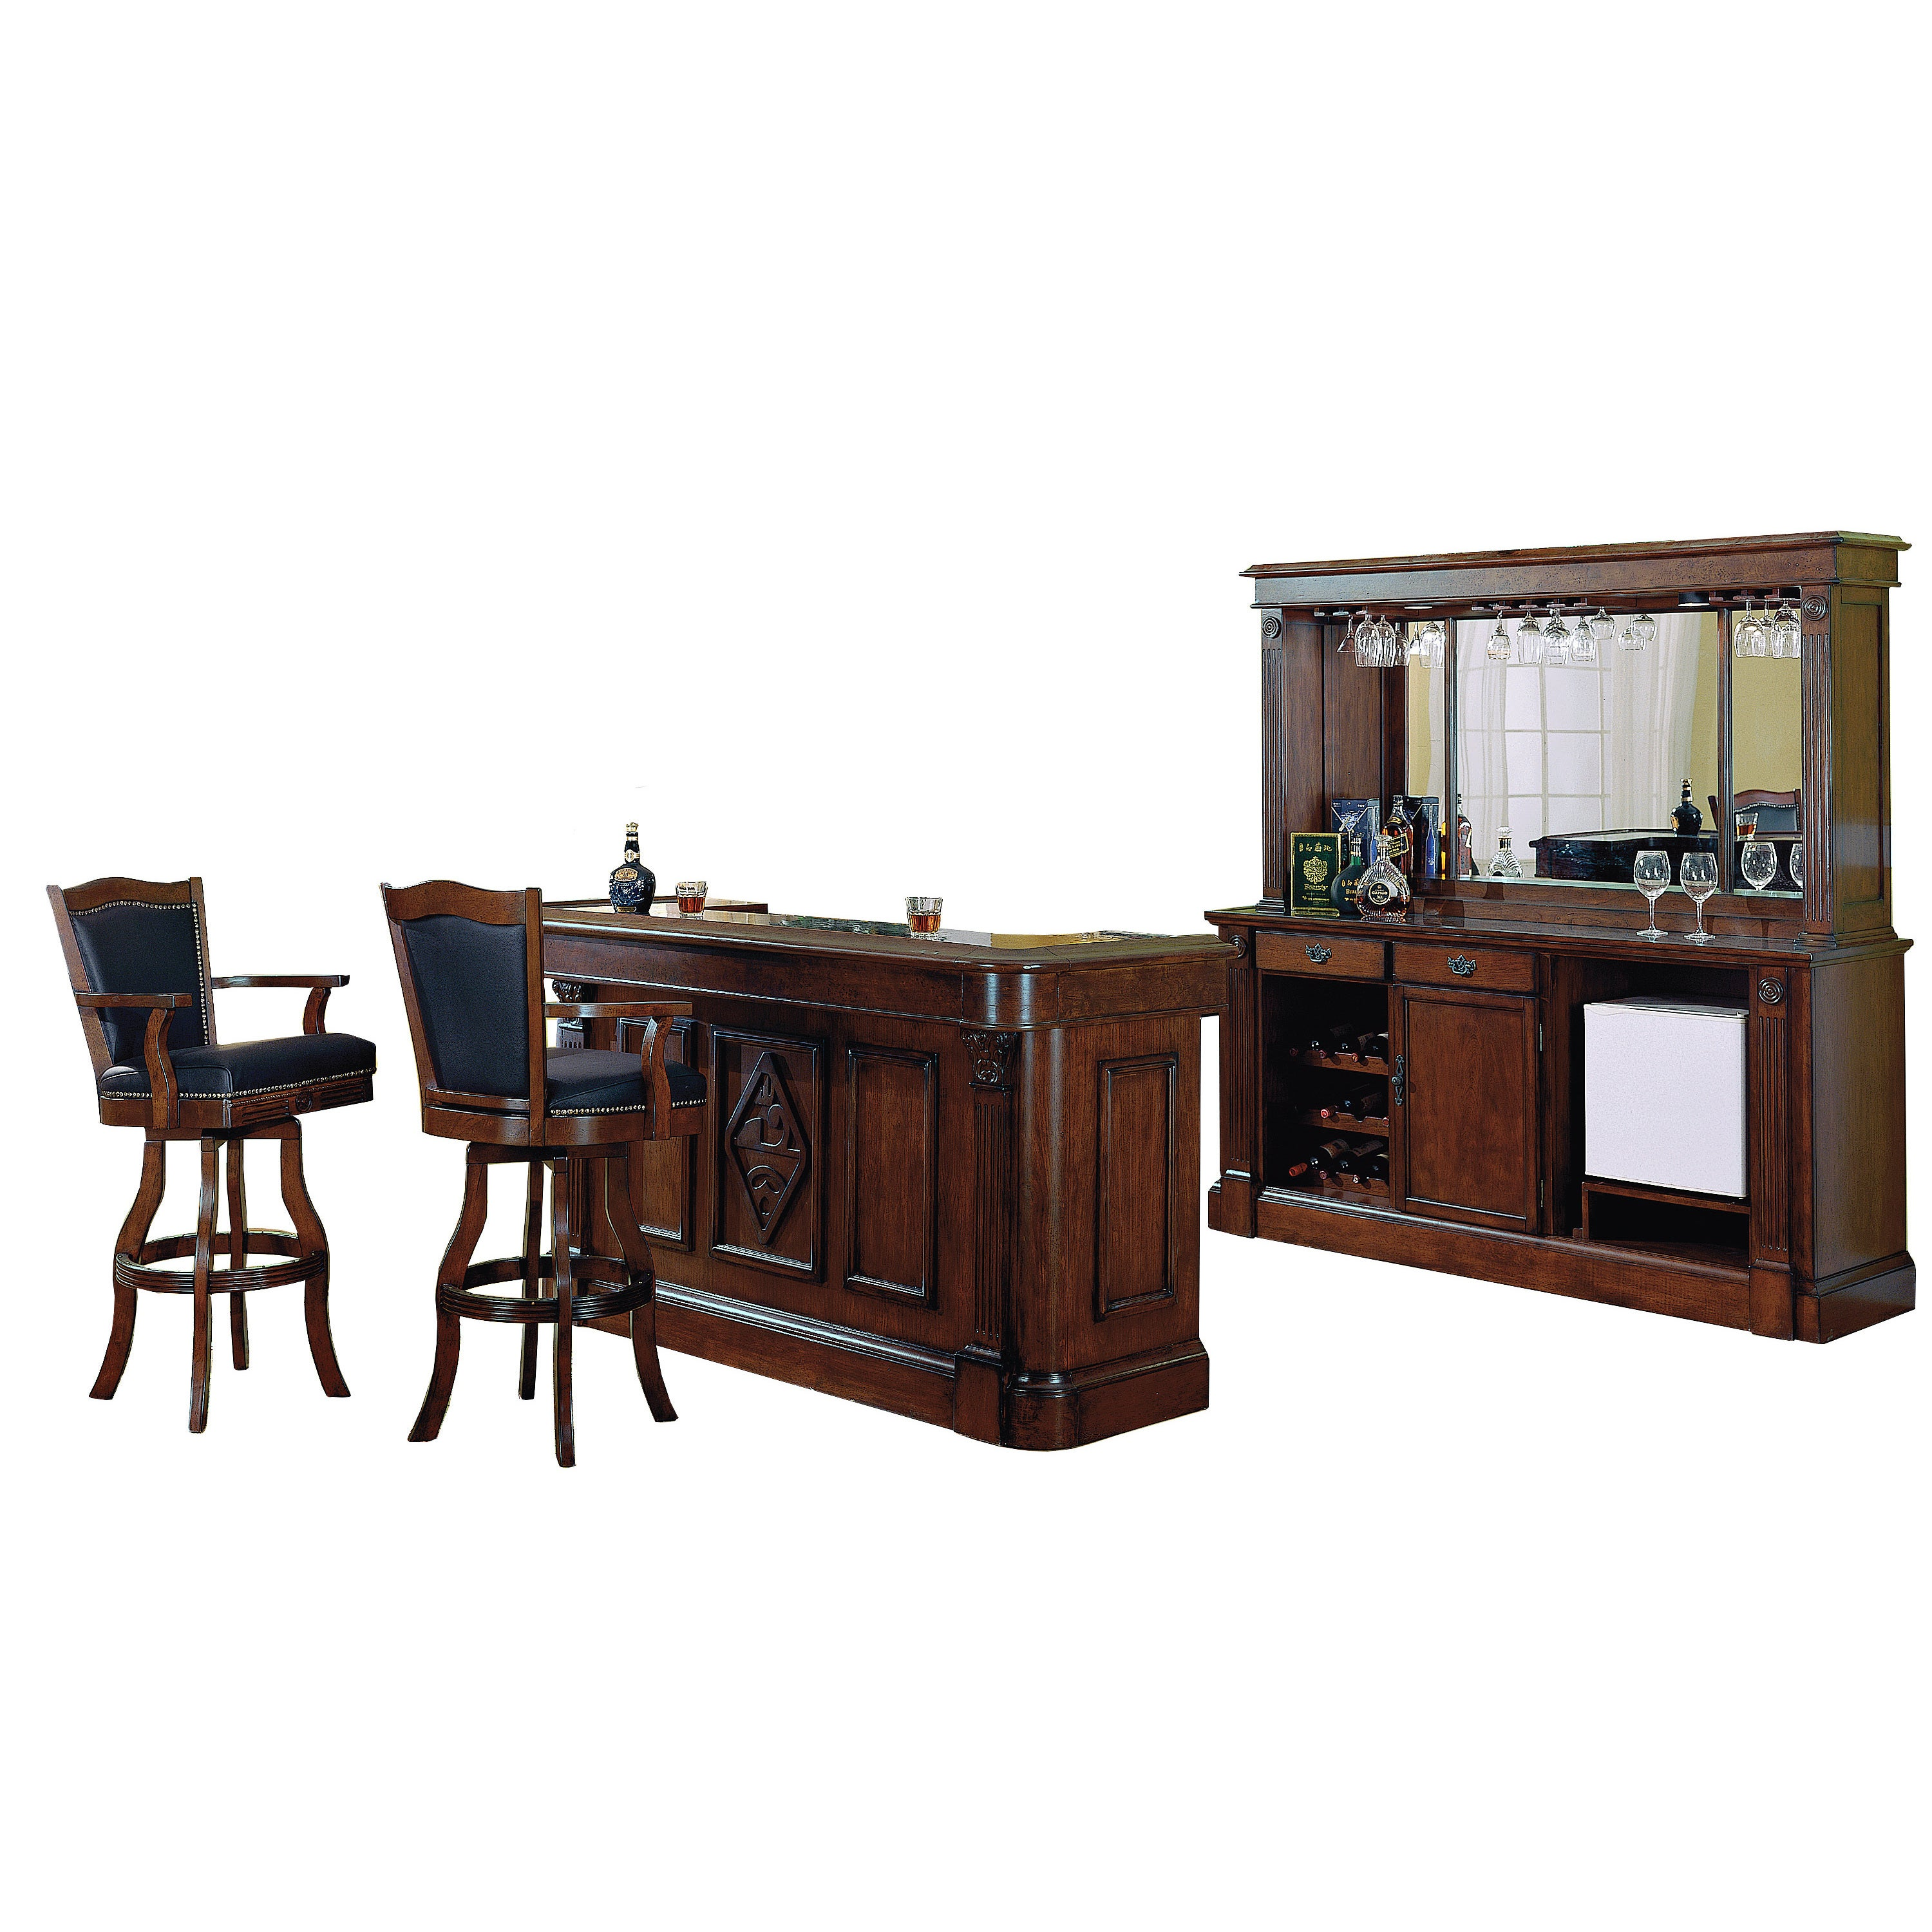 Picture of: Whitaker Furniture Monticello Back Bar Overstock 11537066